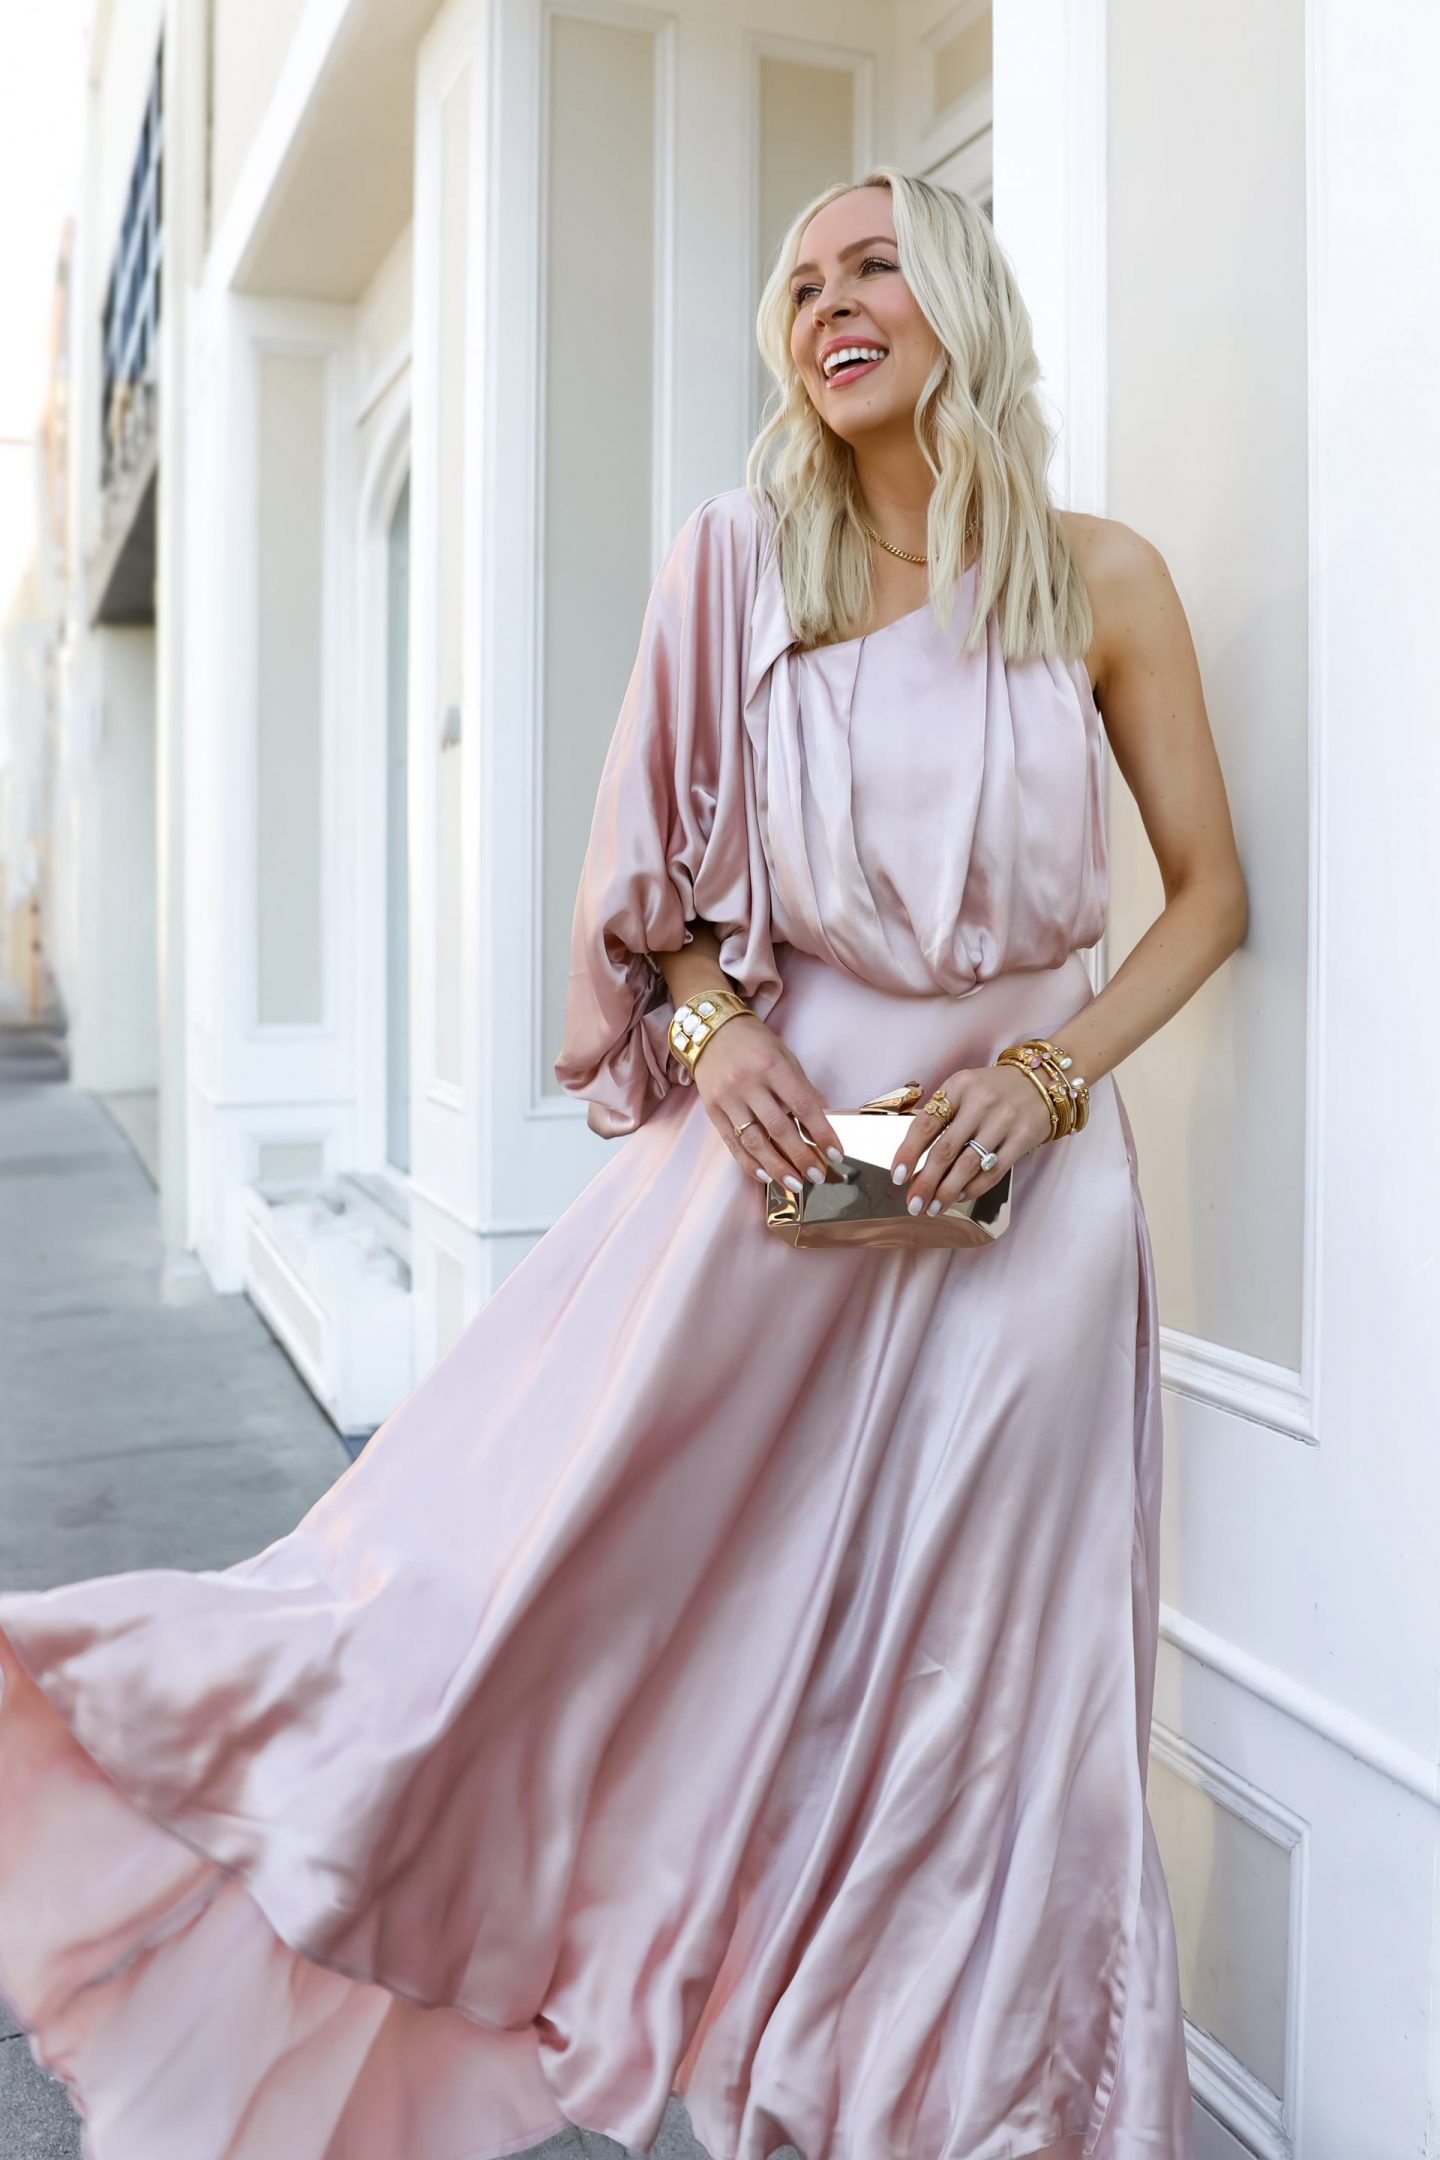 Wedding guest dresses and style inspiration for summer, by fashion blogger Lombard & Fifth.